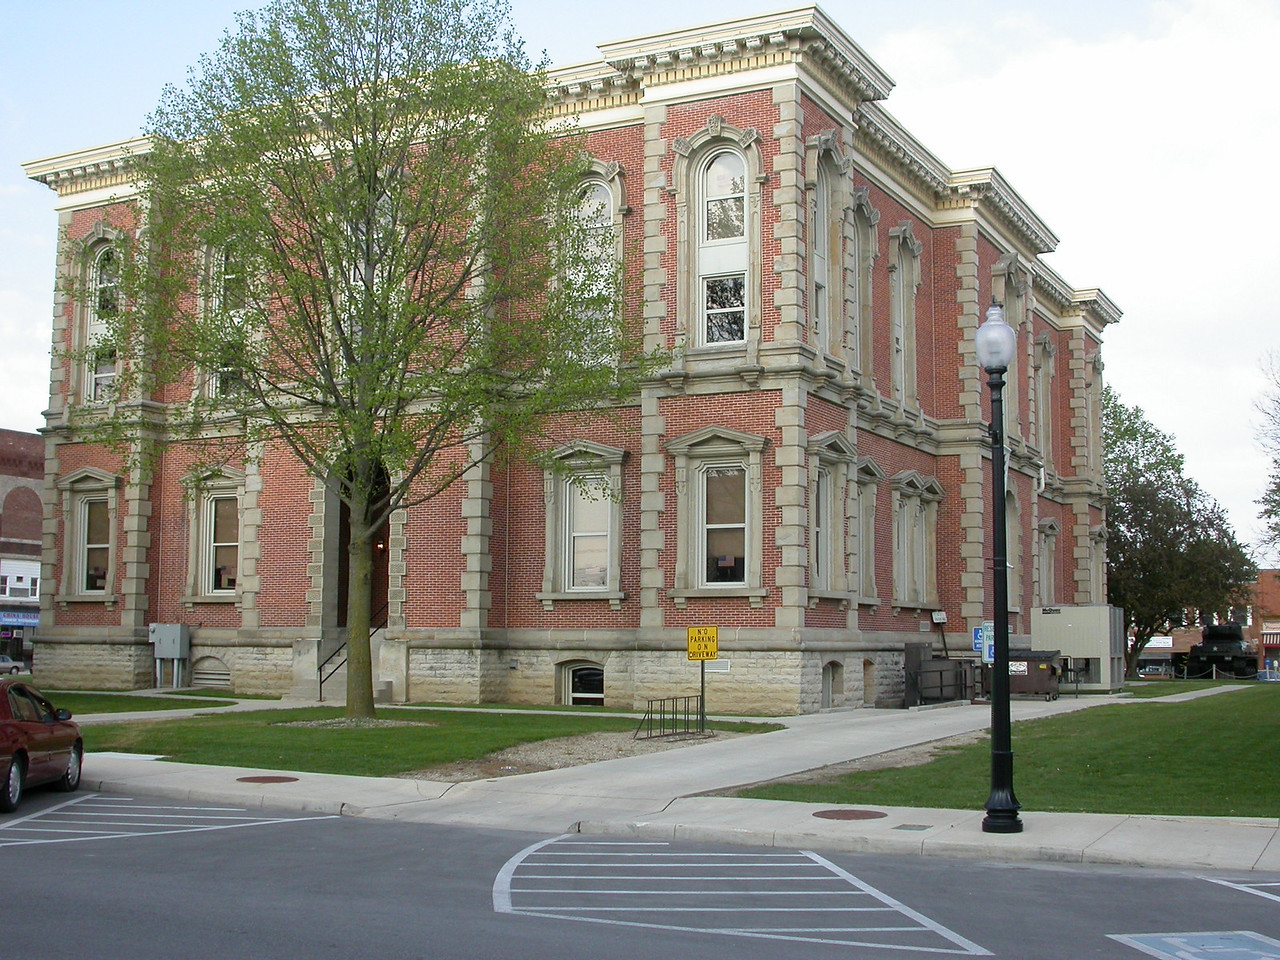 Randolph County Courthouse, Winchester, Indiana, May 2004.